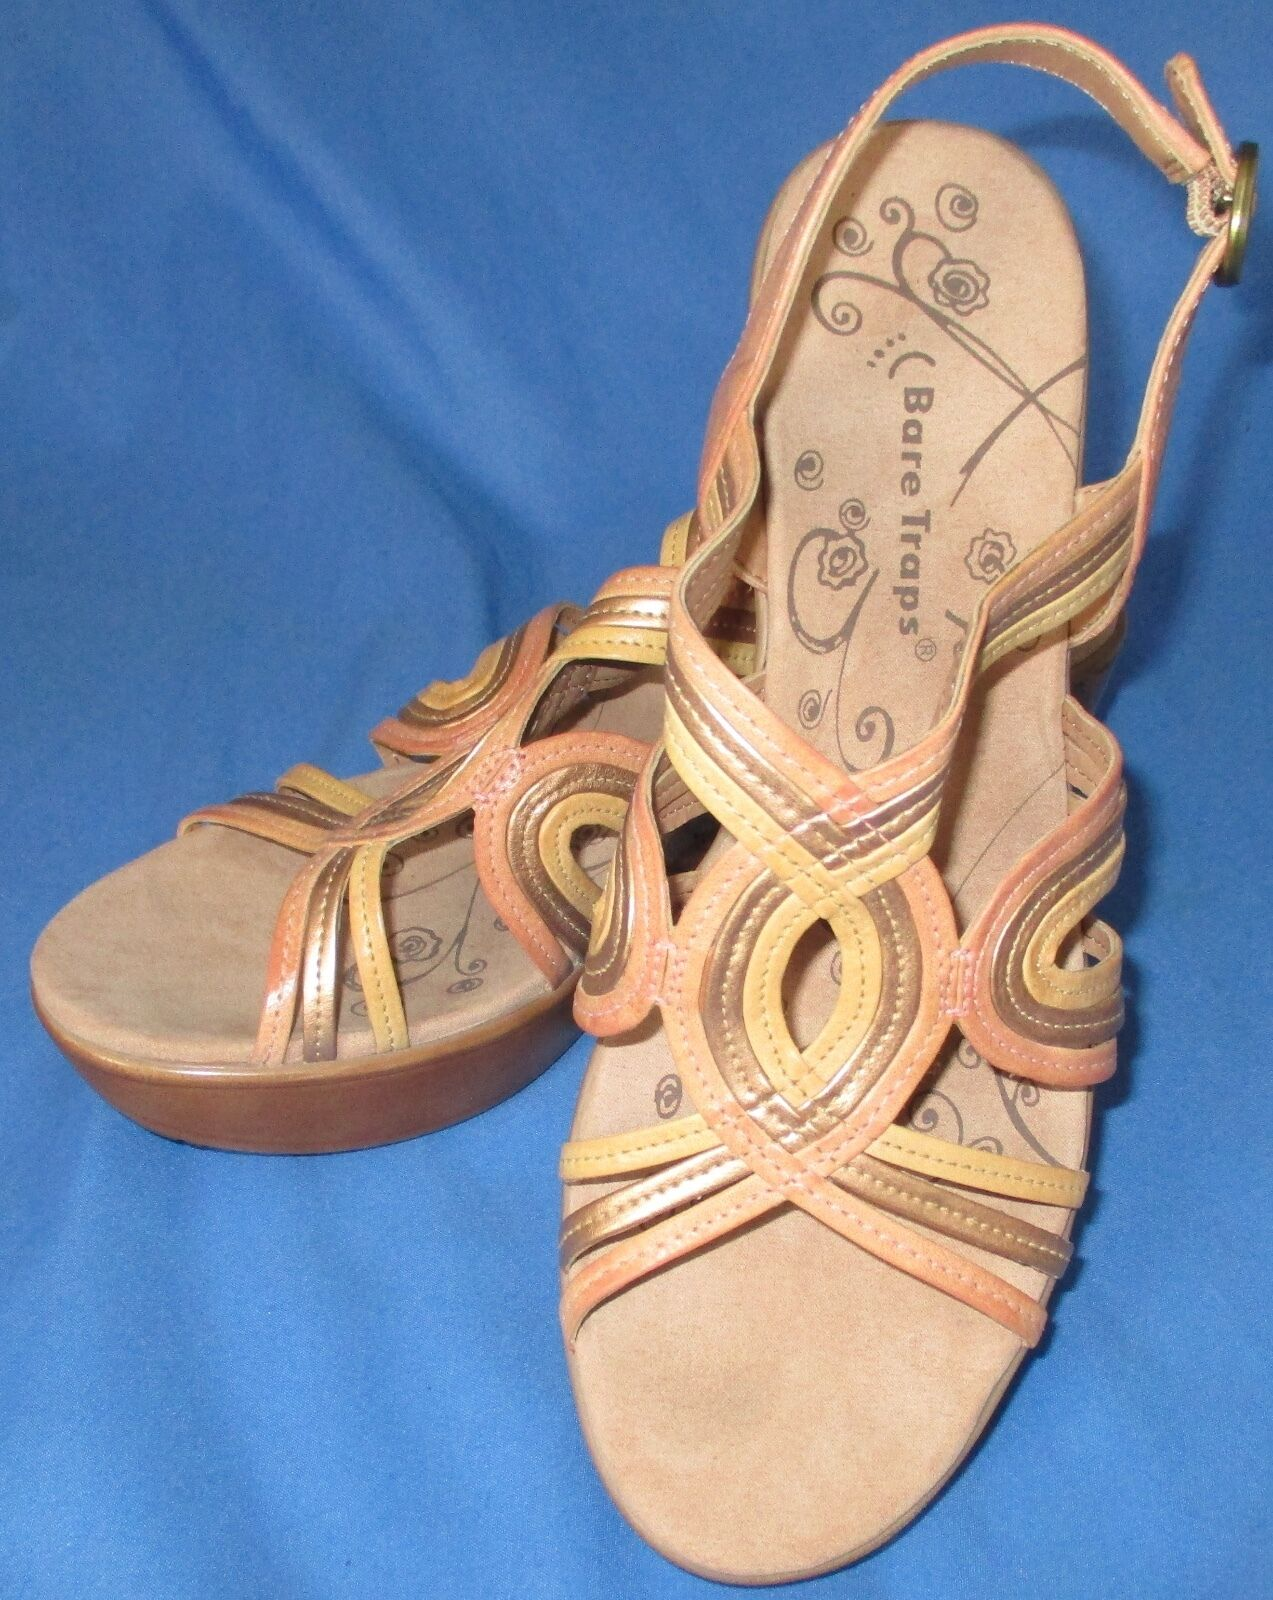 Women's Bare Traps Dangle Heels Sandals Open M Toe Size 8 1/2 M Open 76a54d